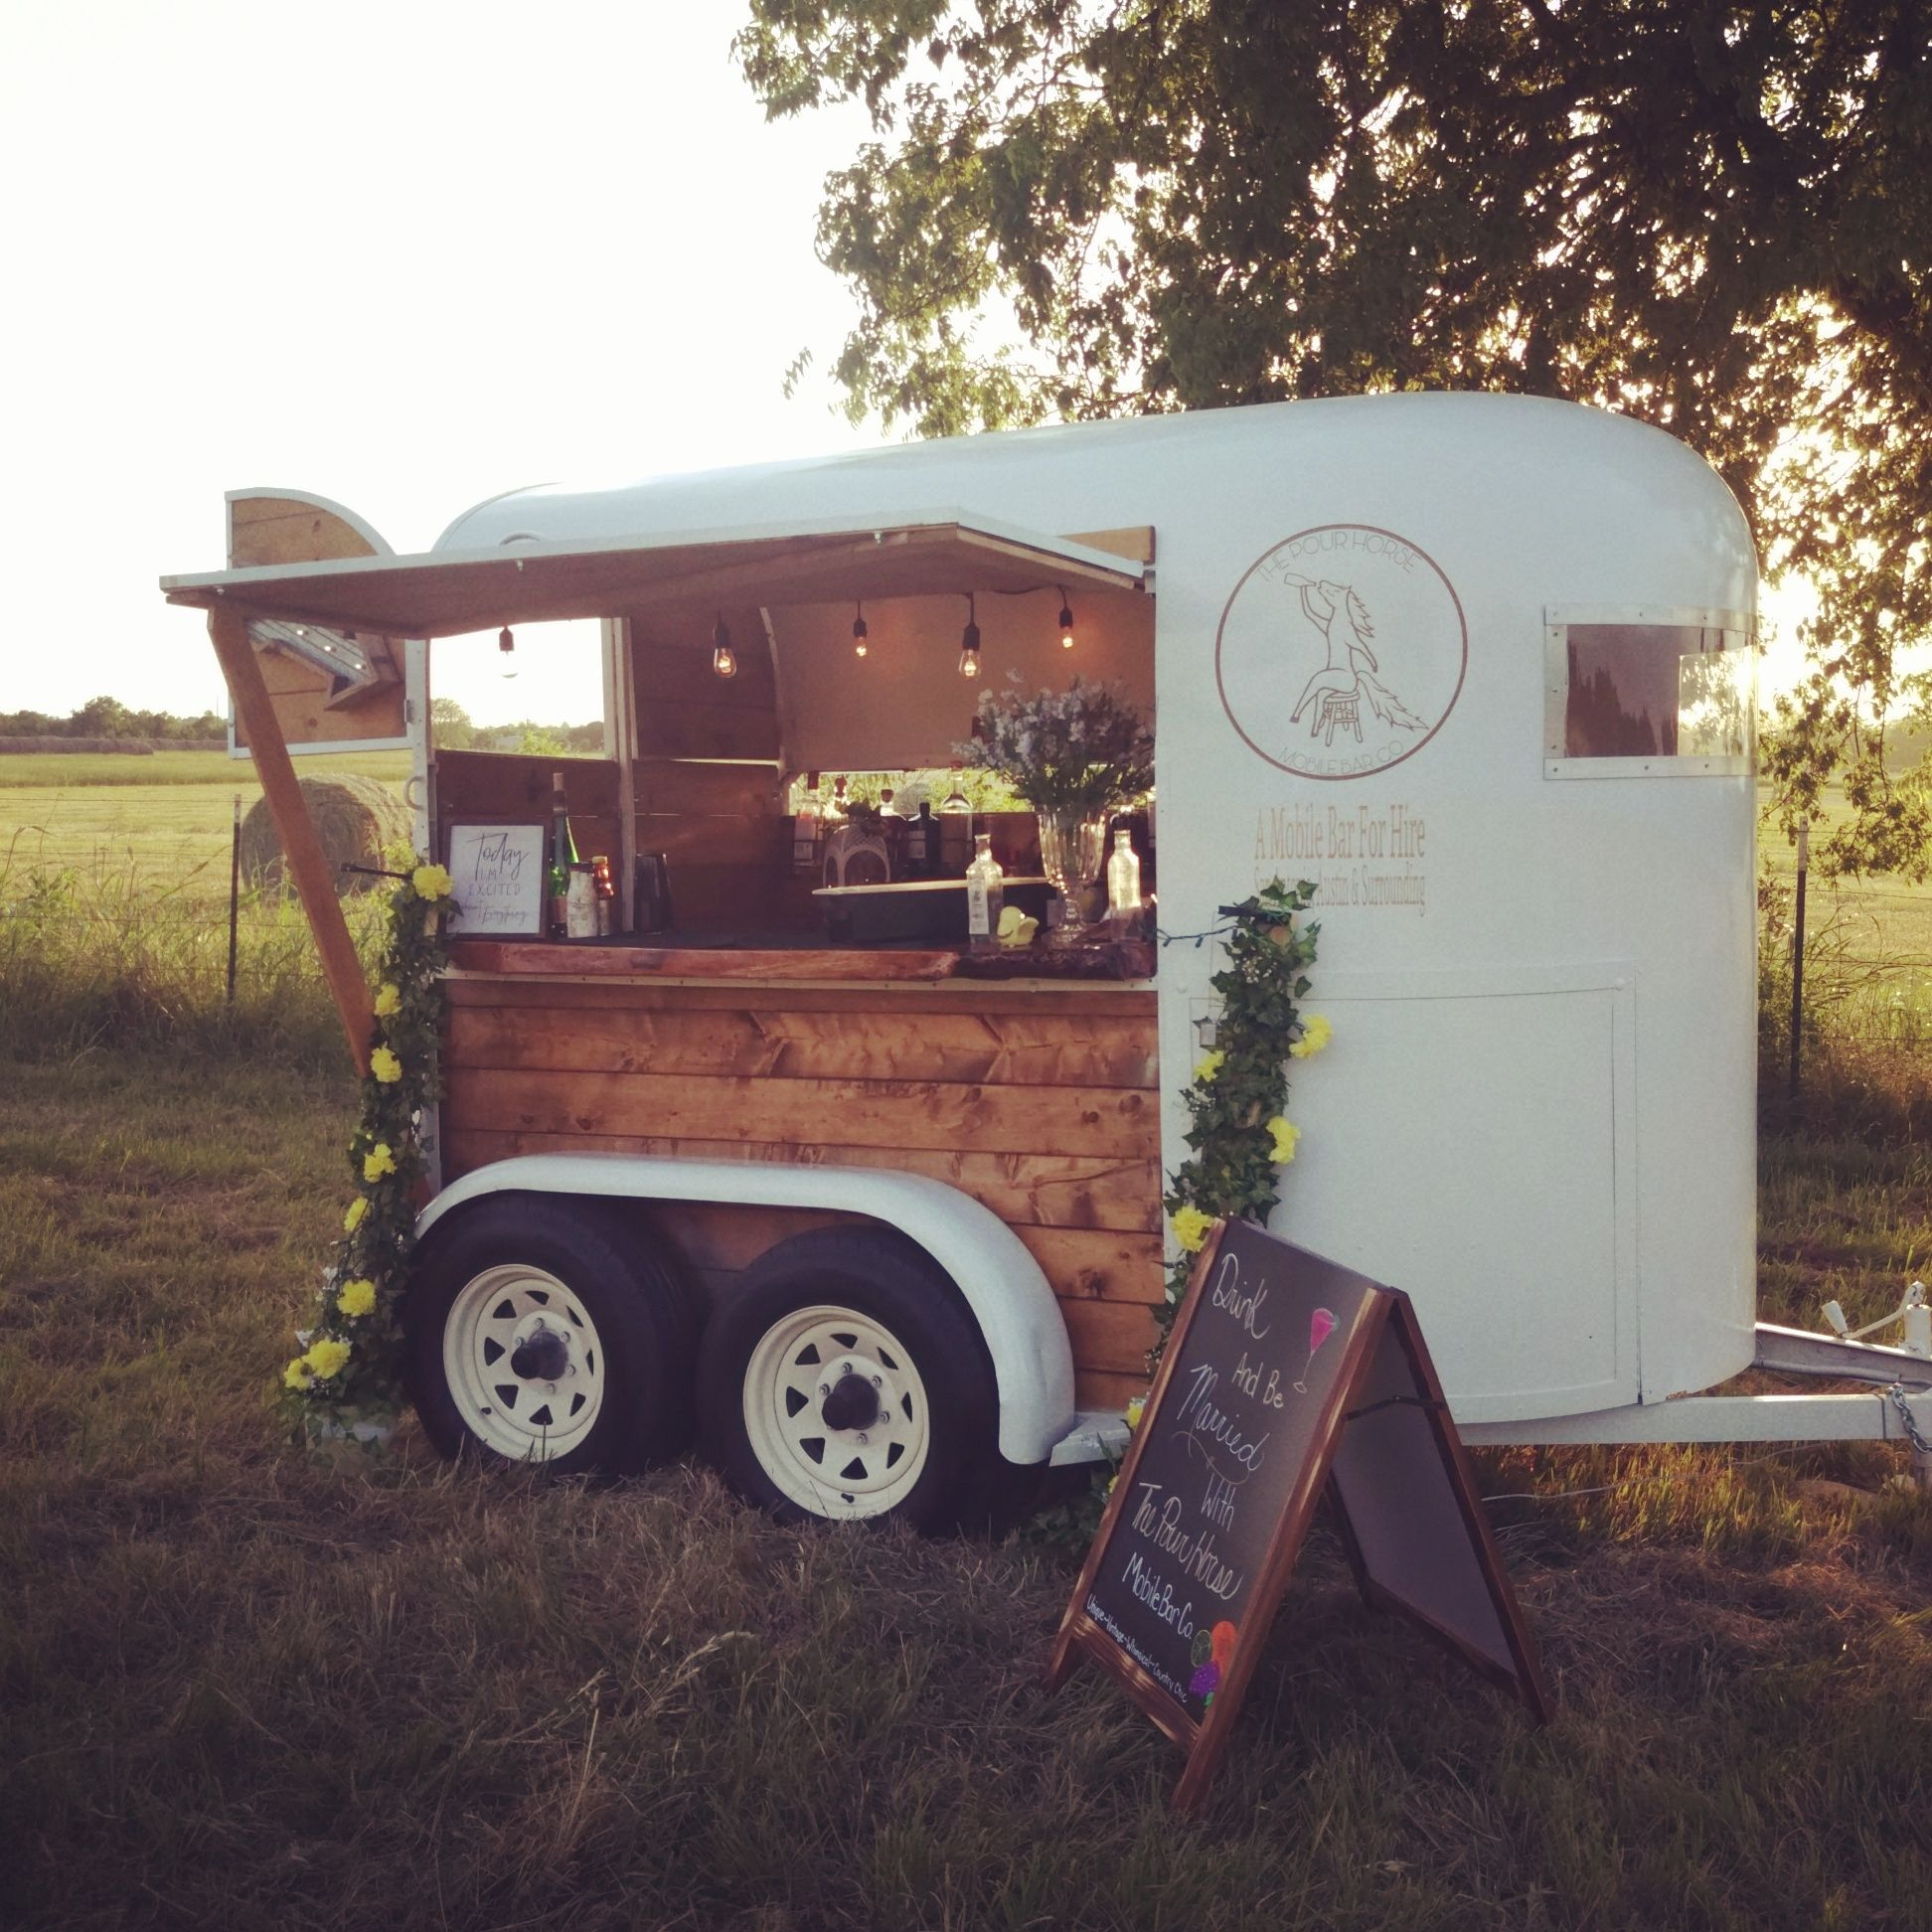 Converting horse trailer into a mobile bar. Want your own